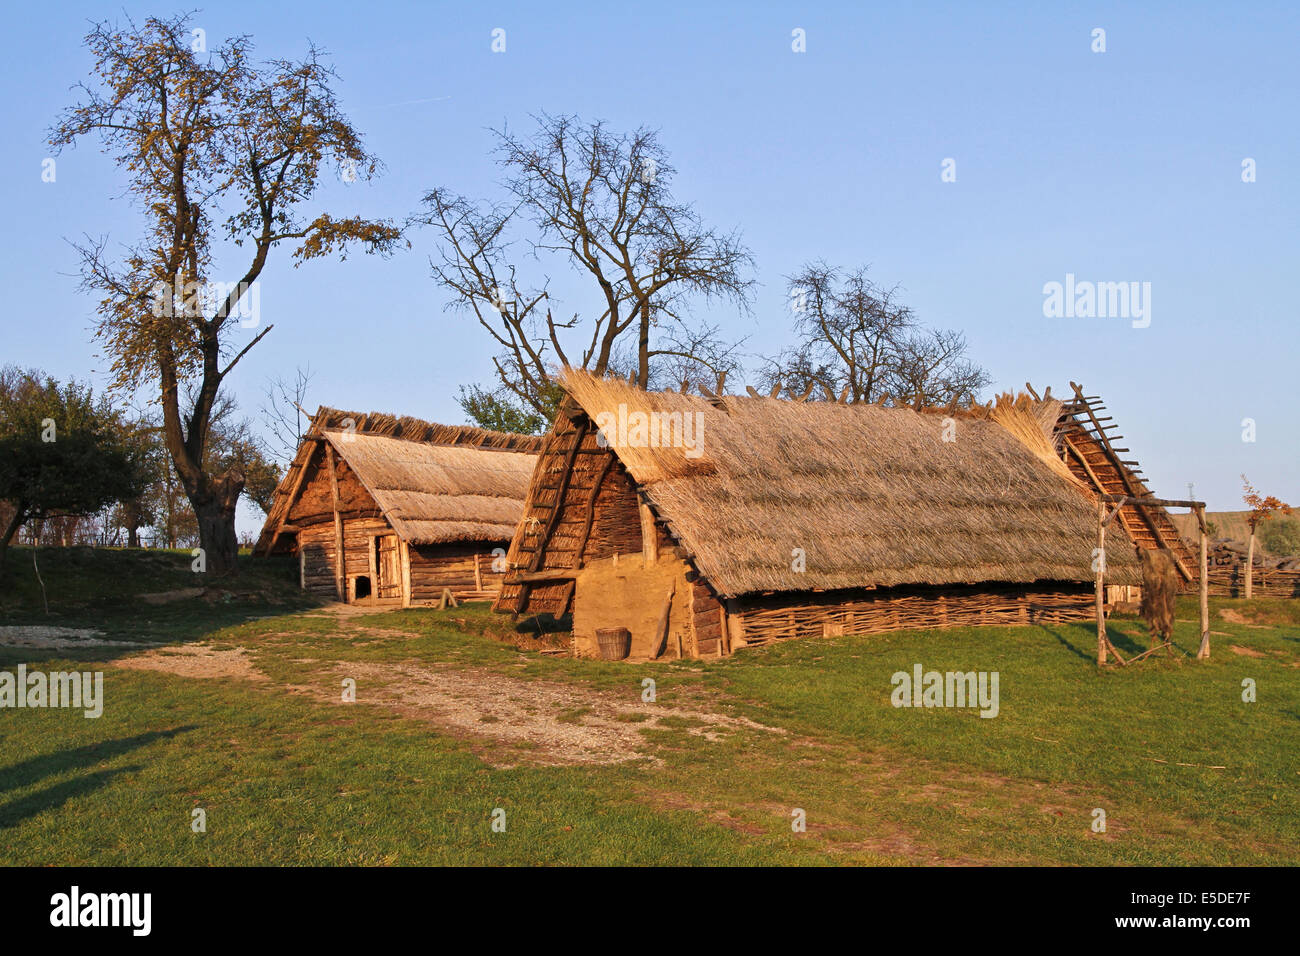 Replica of prehistorical stables in Modra museum /Czech Republic - wooden house with thatch roof - Stock Image